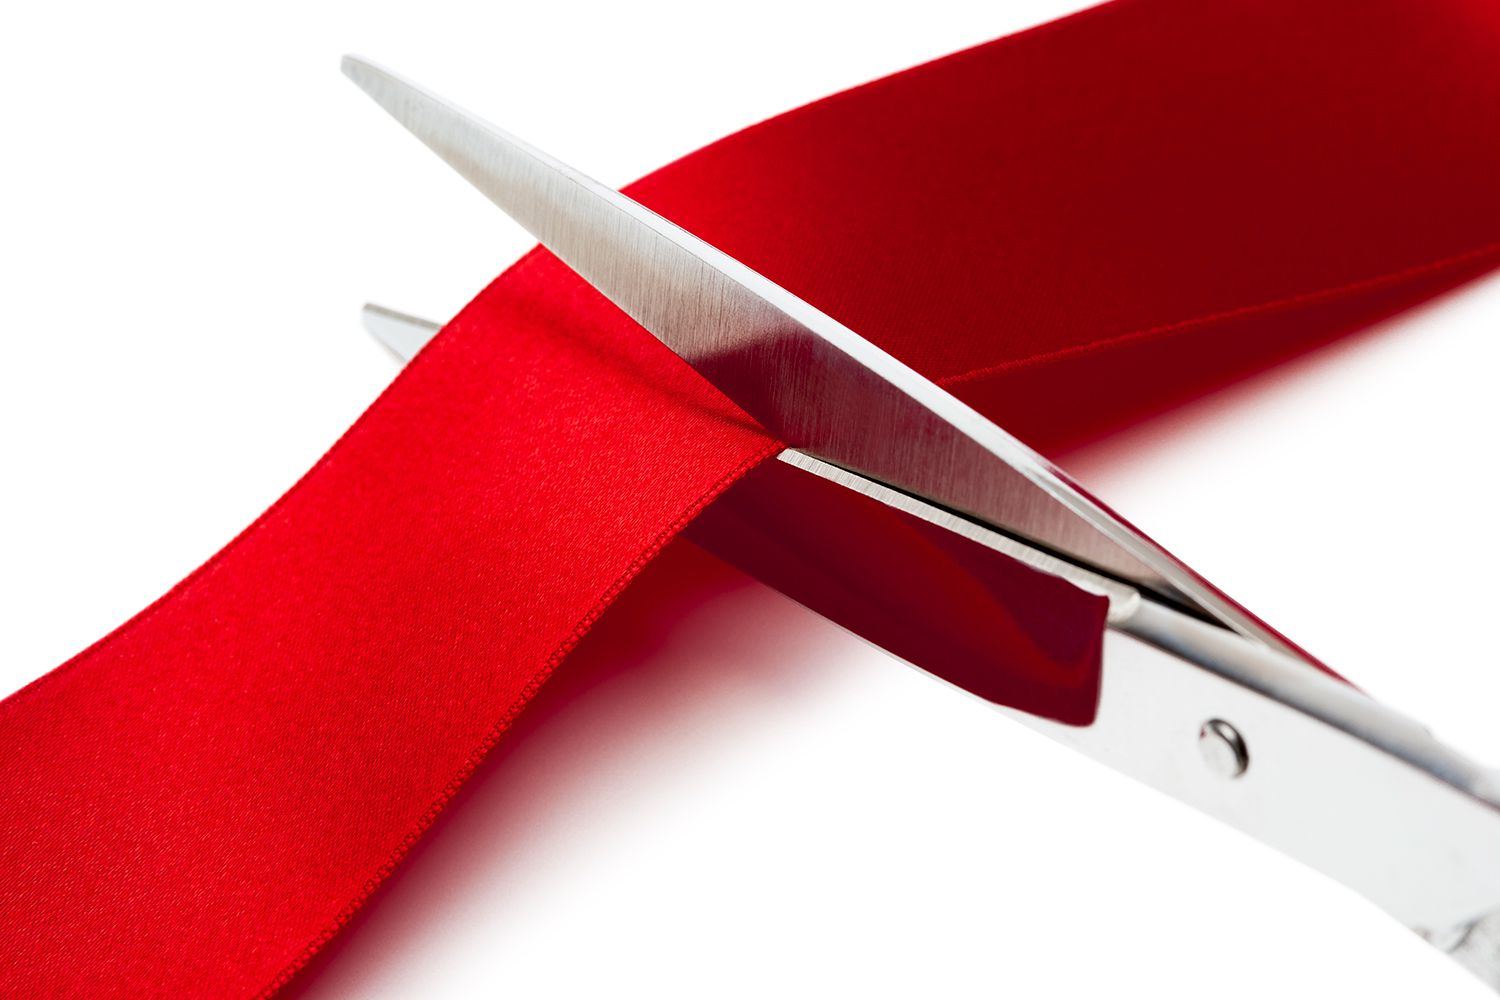 Scissors cutting a red ribbon on a white background.